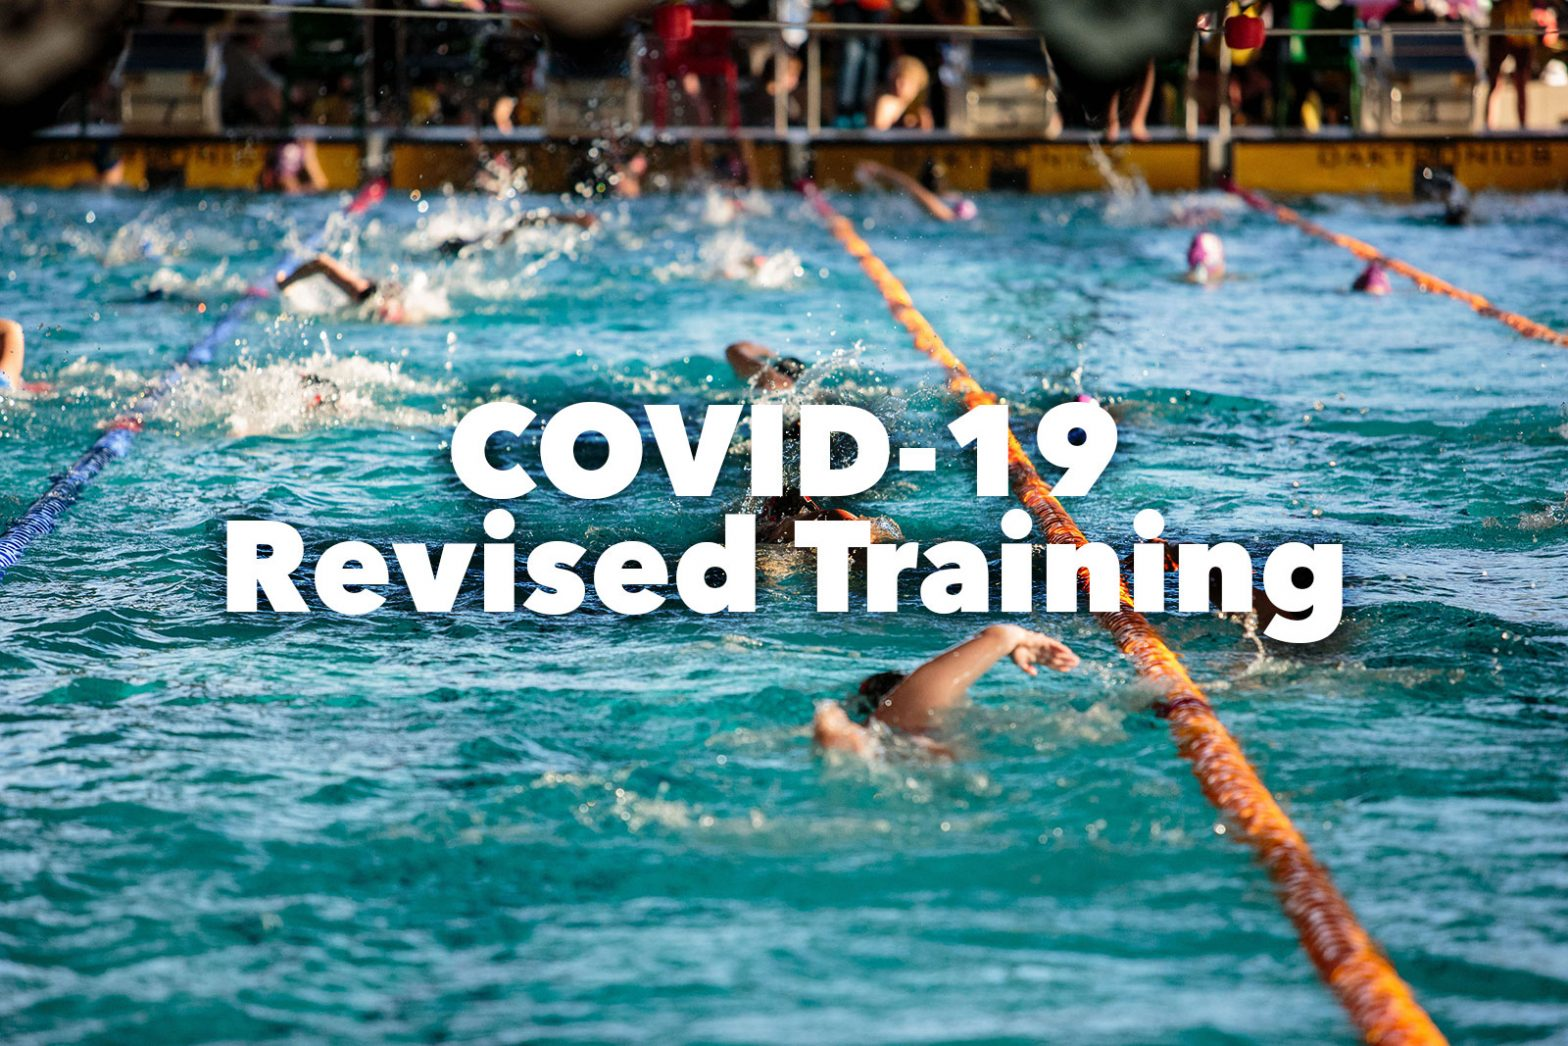 Crusaders COVID-19 Revised Training